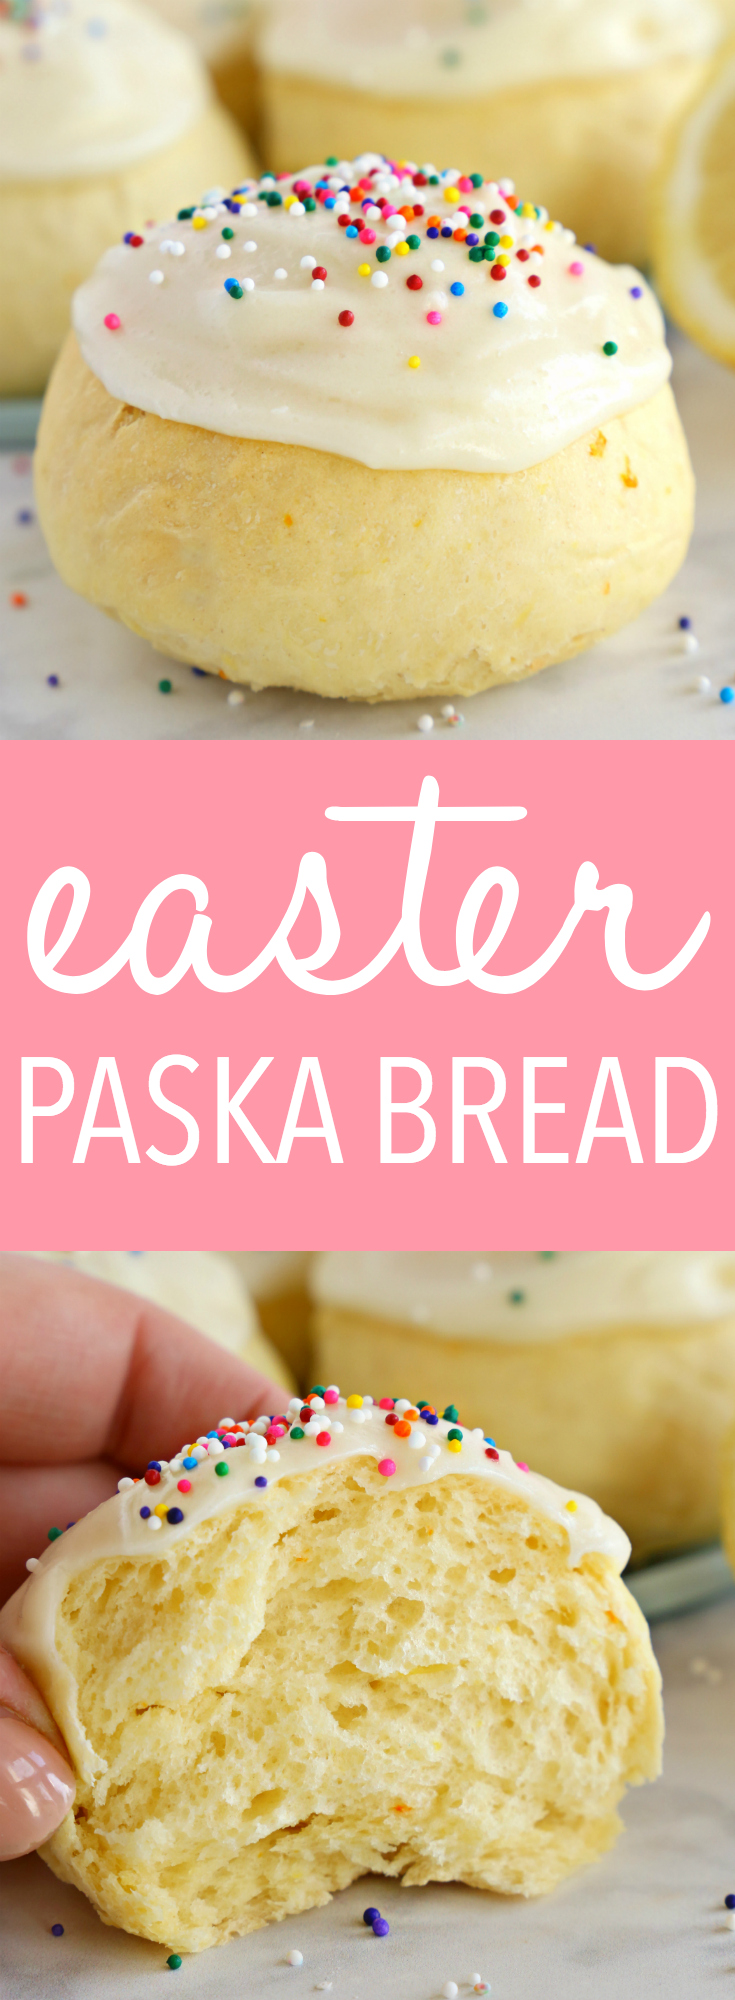 These Easter Paska Buns are the perfect sweet treat for Easter or spring! Made with a fresh citrus-infused simple sweet dough, creamy frosting and sprinkles! Recipe from thebusybaker.ca! #easterbread #easterpaskabuns #easterpaskabread via @busybakerblog